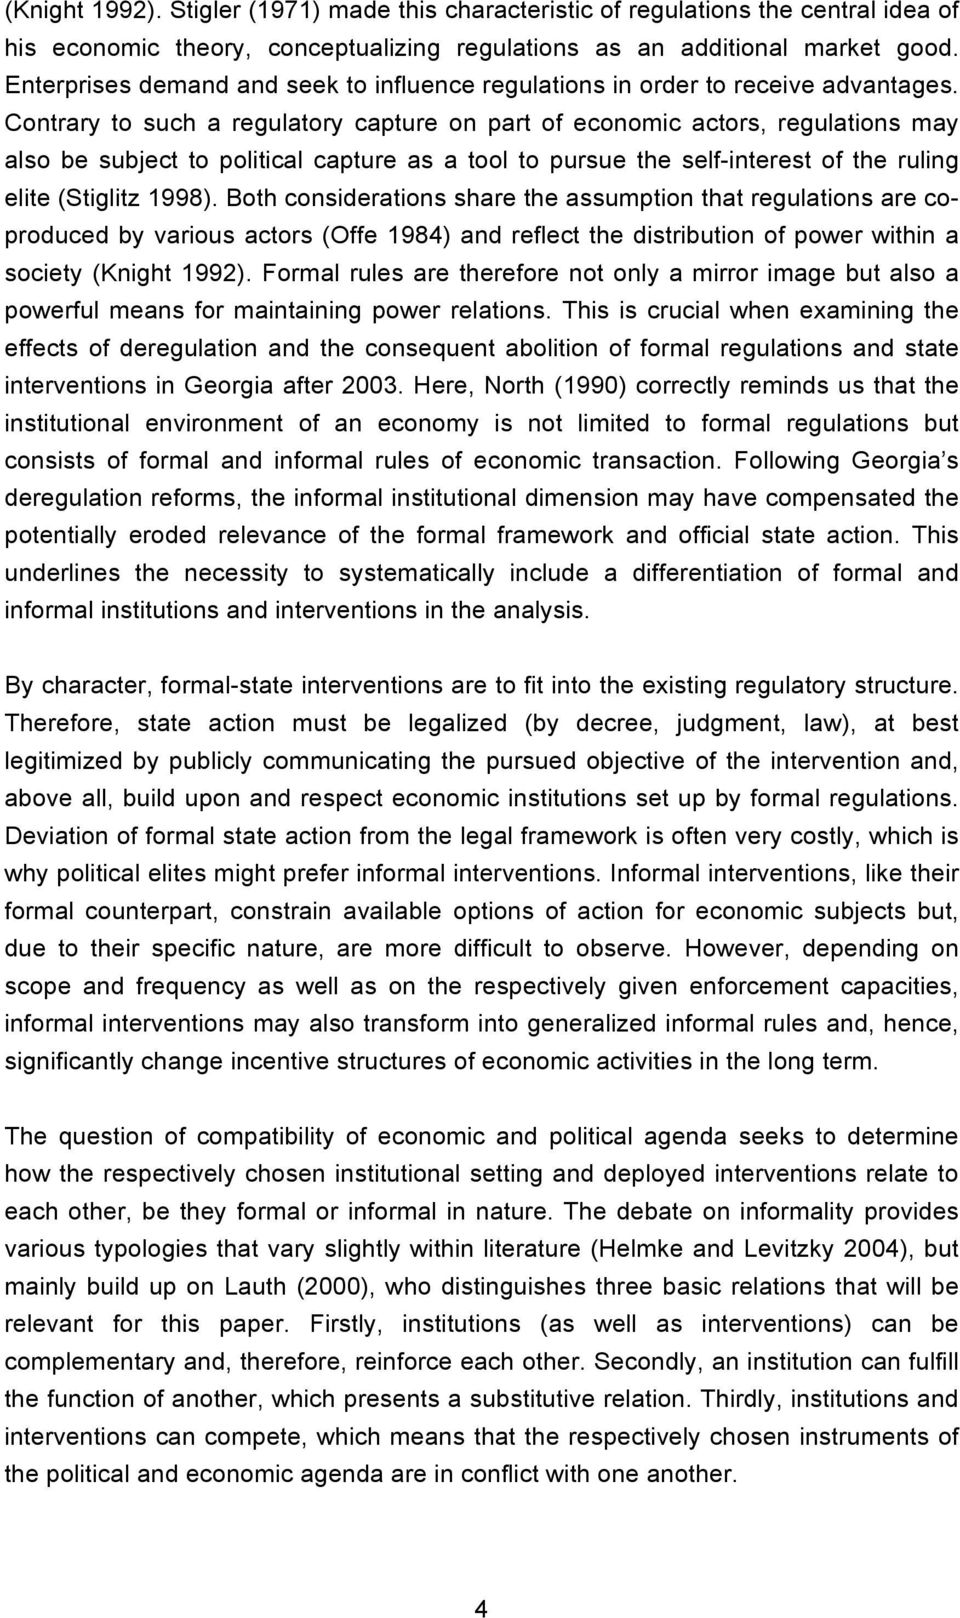 Contrary to such a regulatory capture on part of economic actors, regulations may also be subject to political capture as a tool to pursue the self-interest of the ruling elite (Stiglitz 1998).